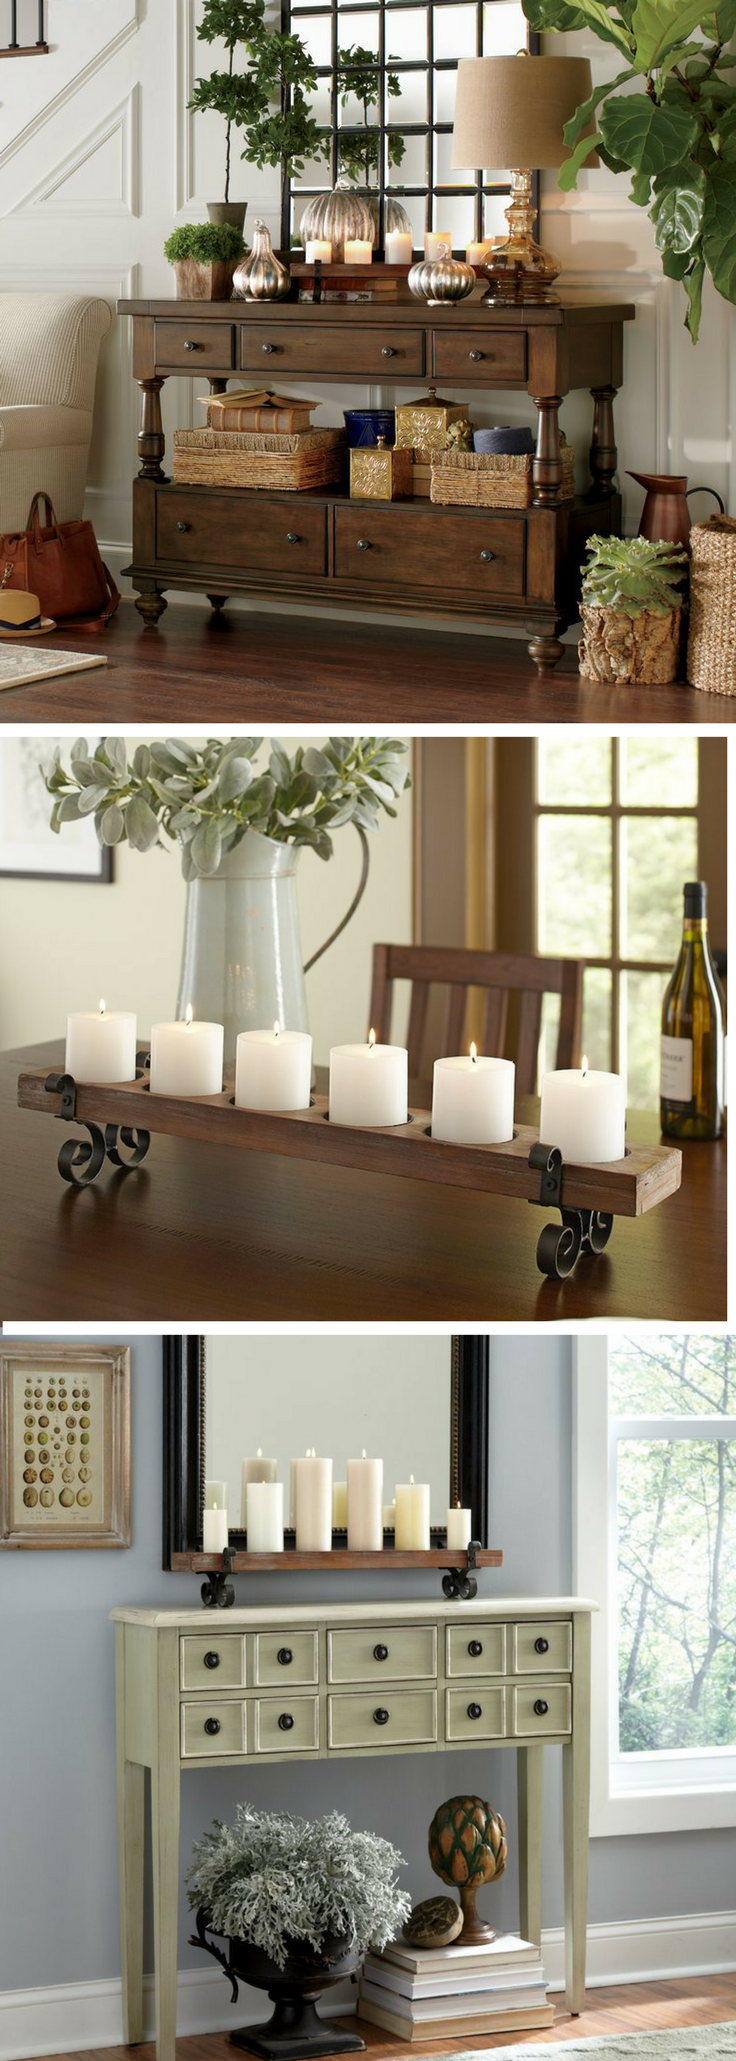 Glass console table decor  Plank Candleholder  farmhouse Décor  Style  fixer upper style